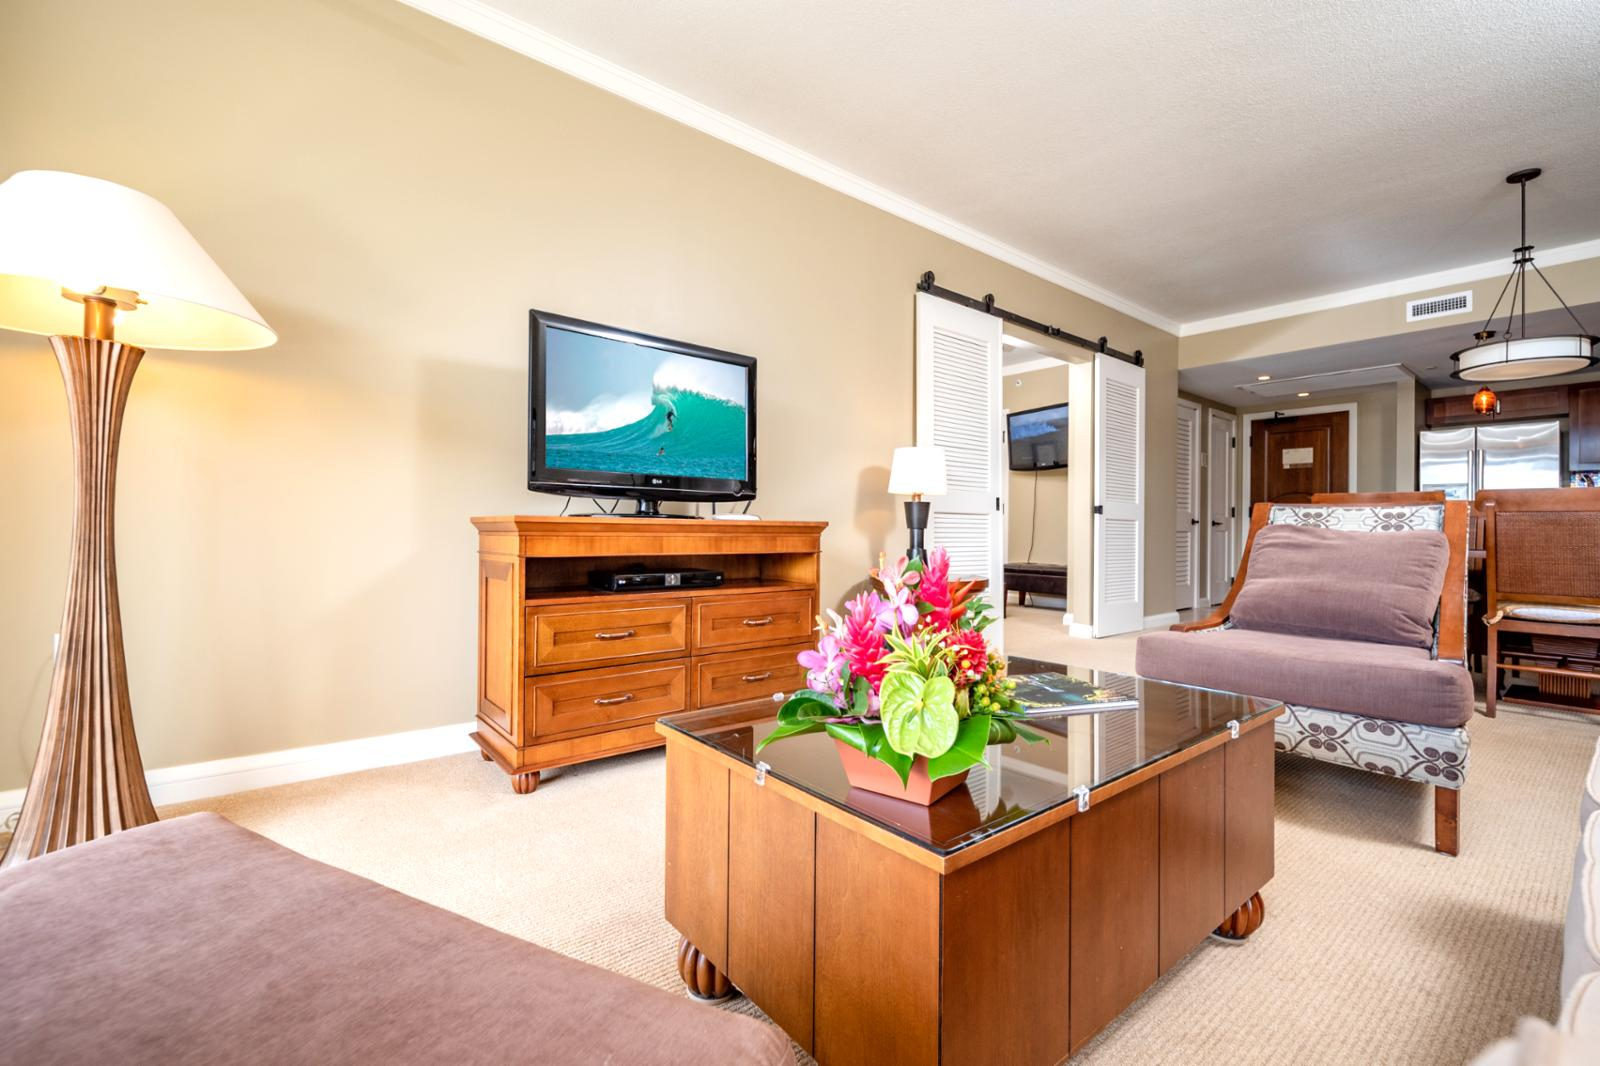 Enjoy central zone AC and large flat screen television in your living room